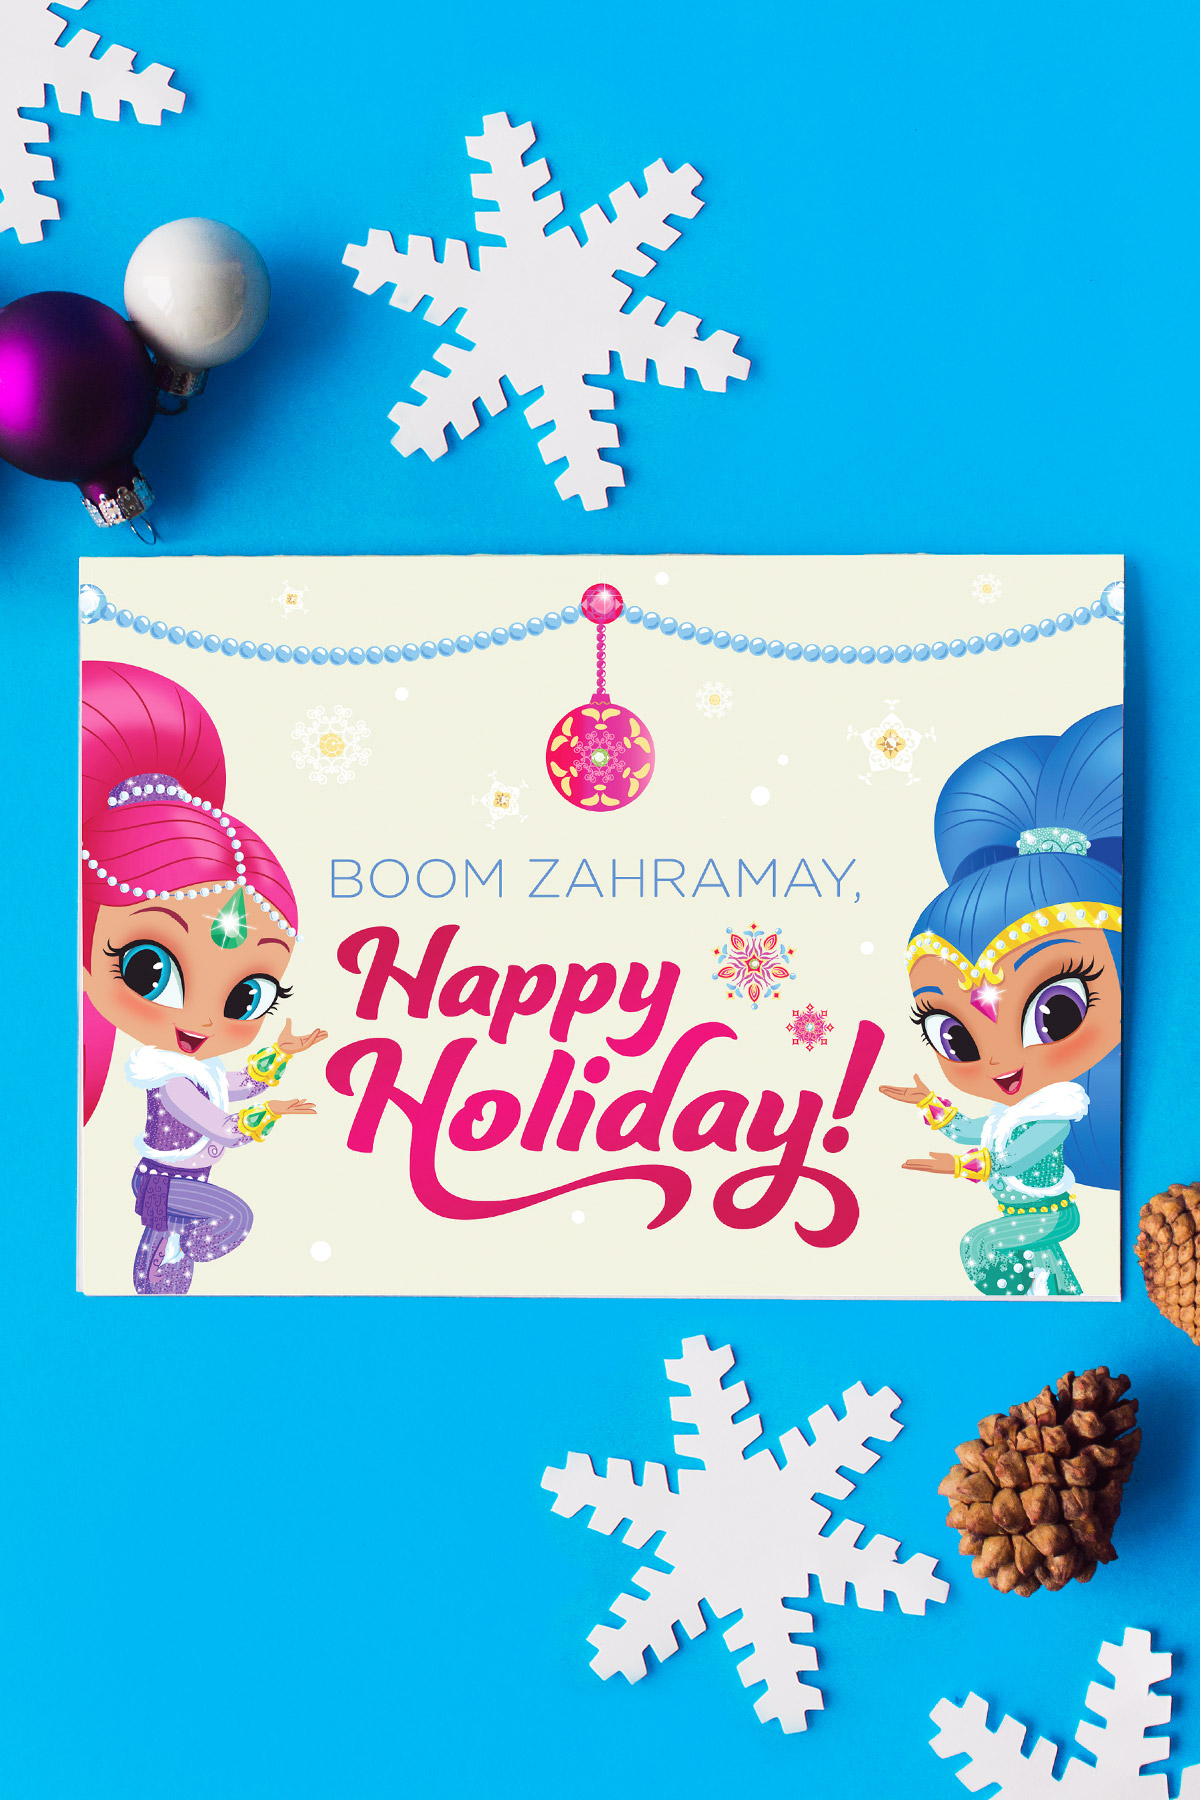 Shimmer Amp Shine Holiday Card Nickelodeon Parents